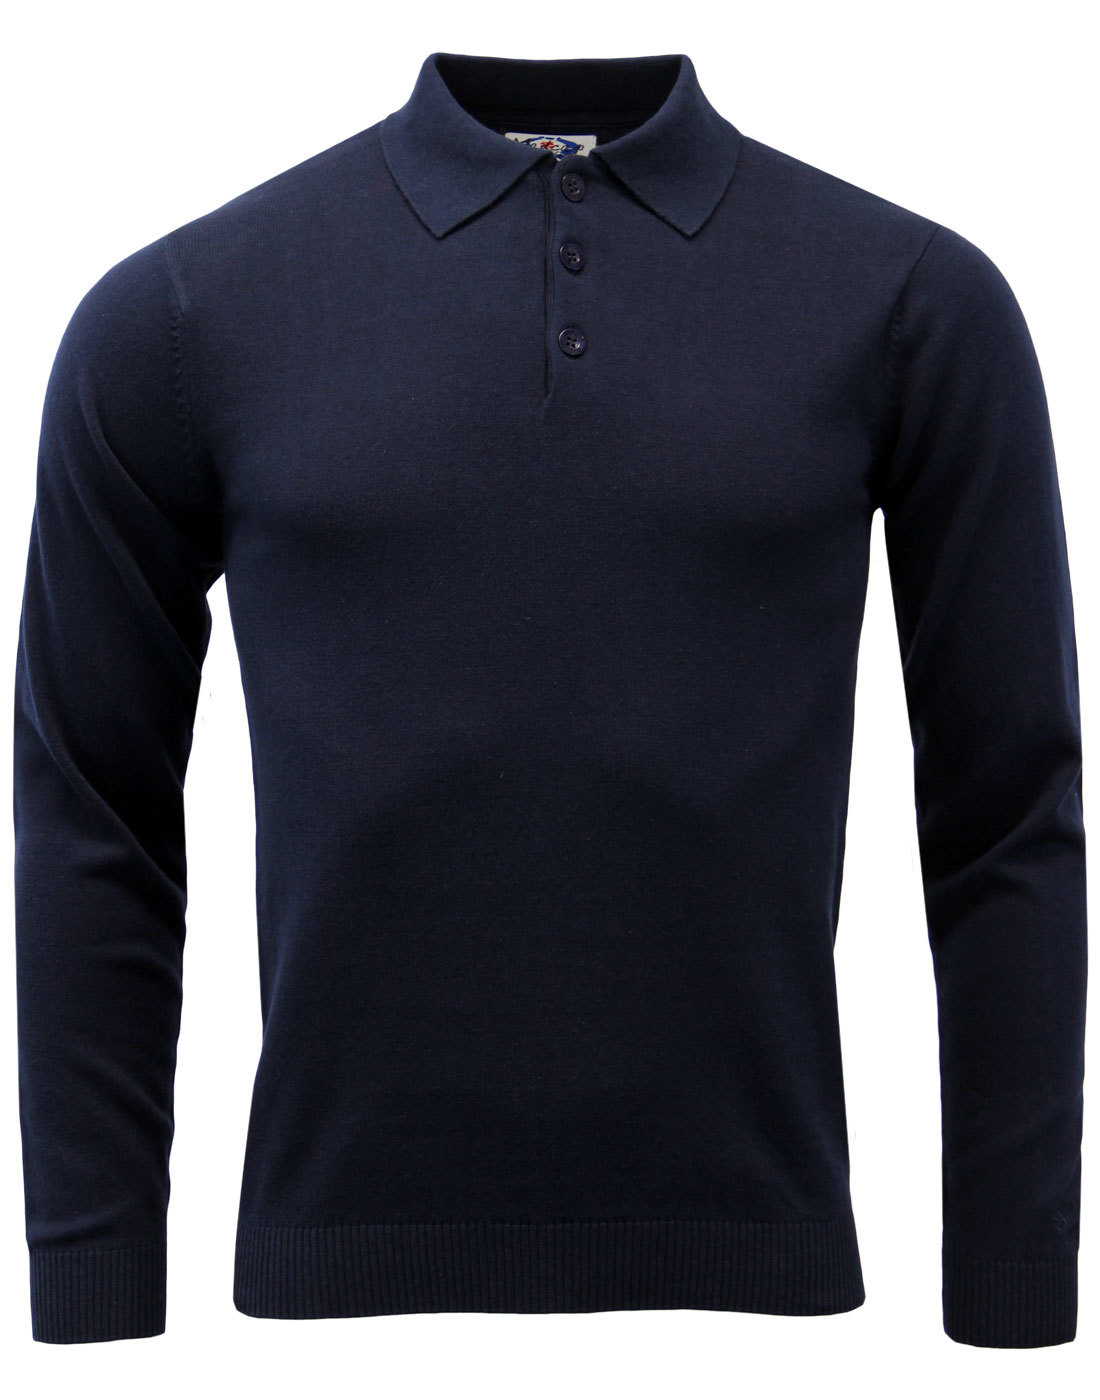 Brando MADCAP ENGLAND 1960s Mod Knitted Polo (N)